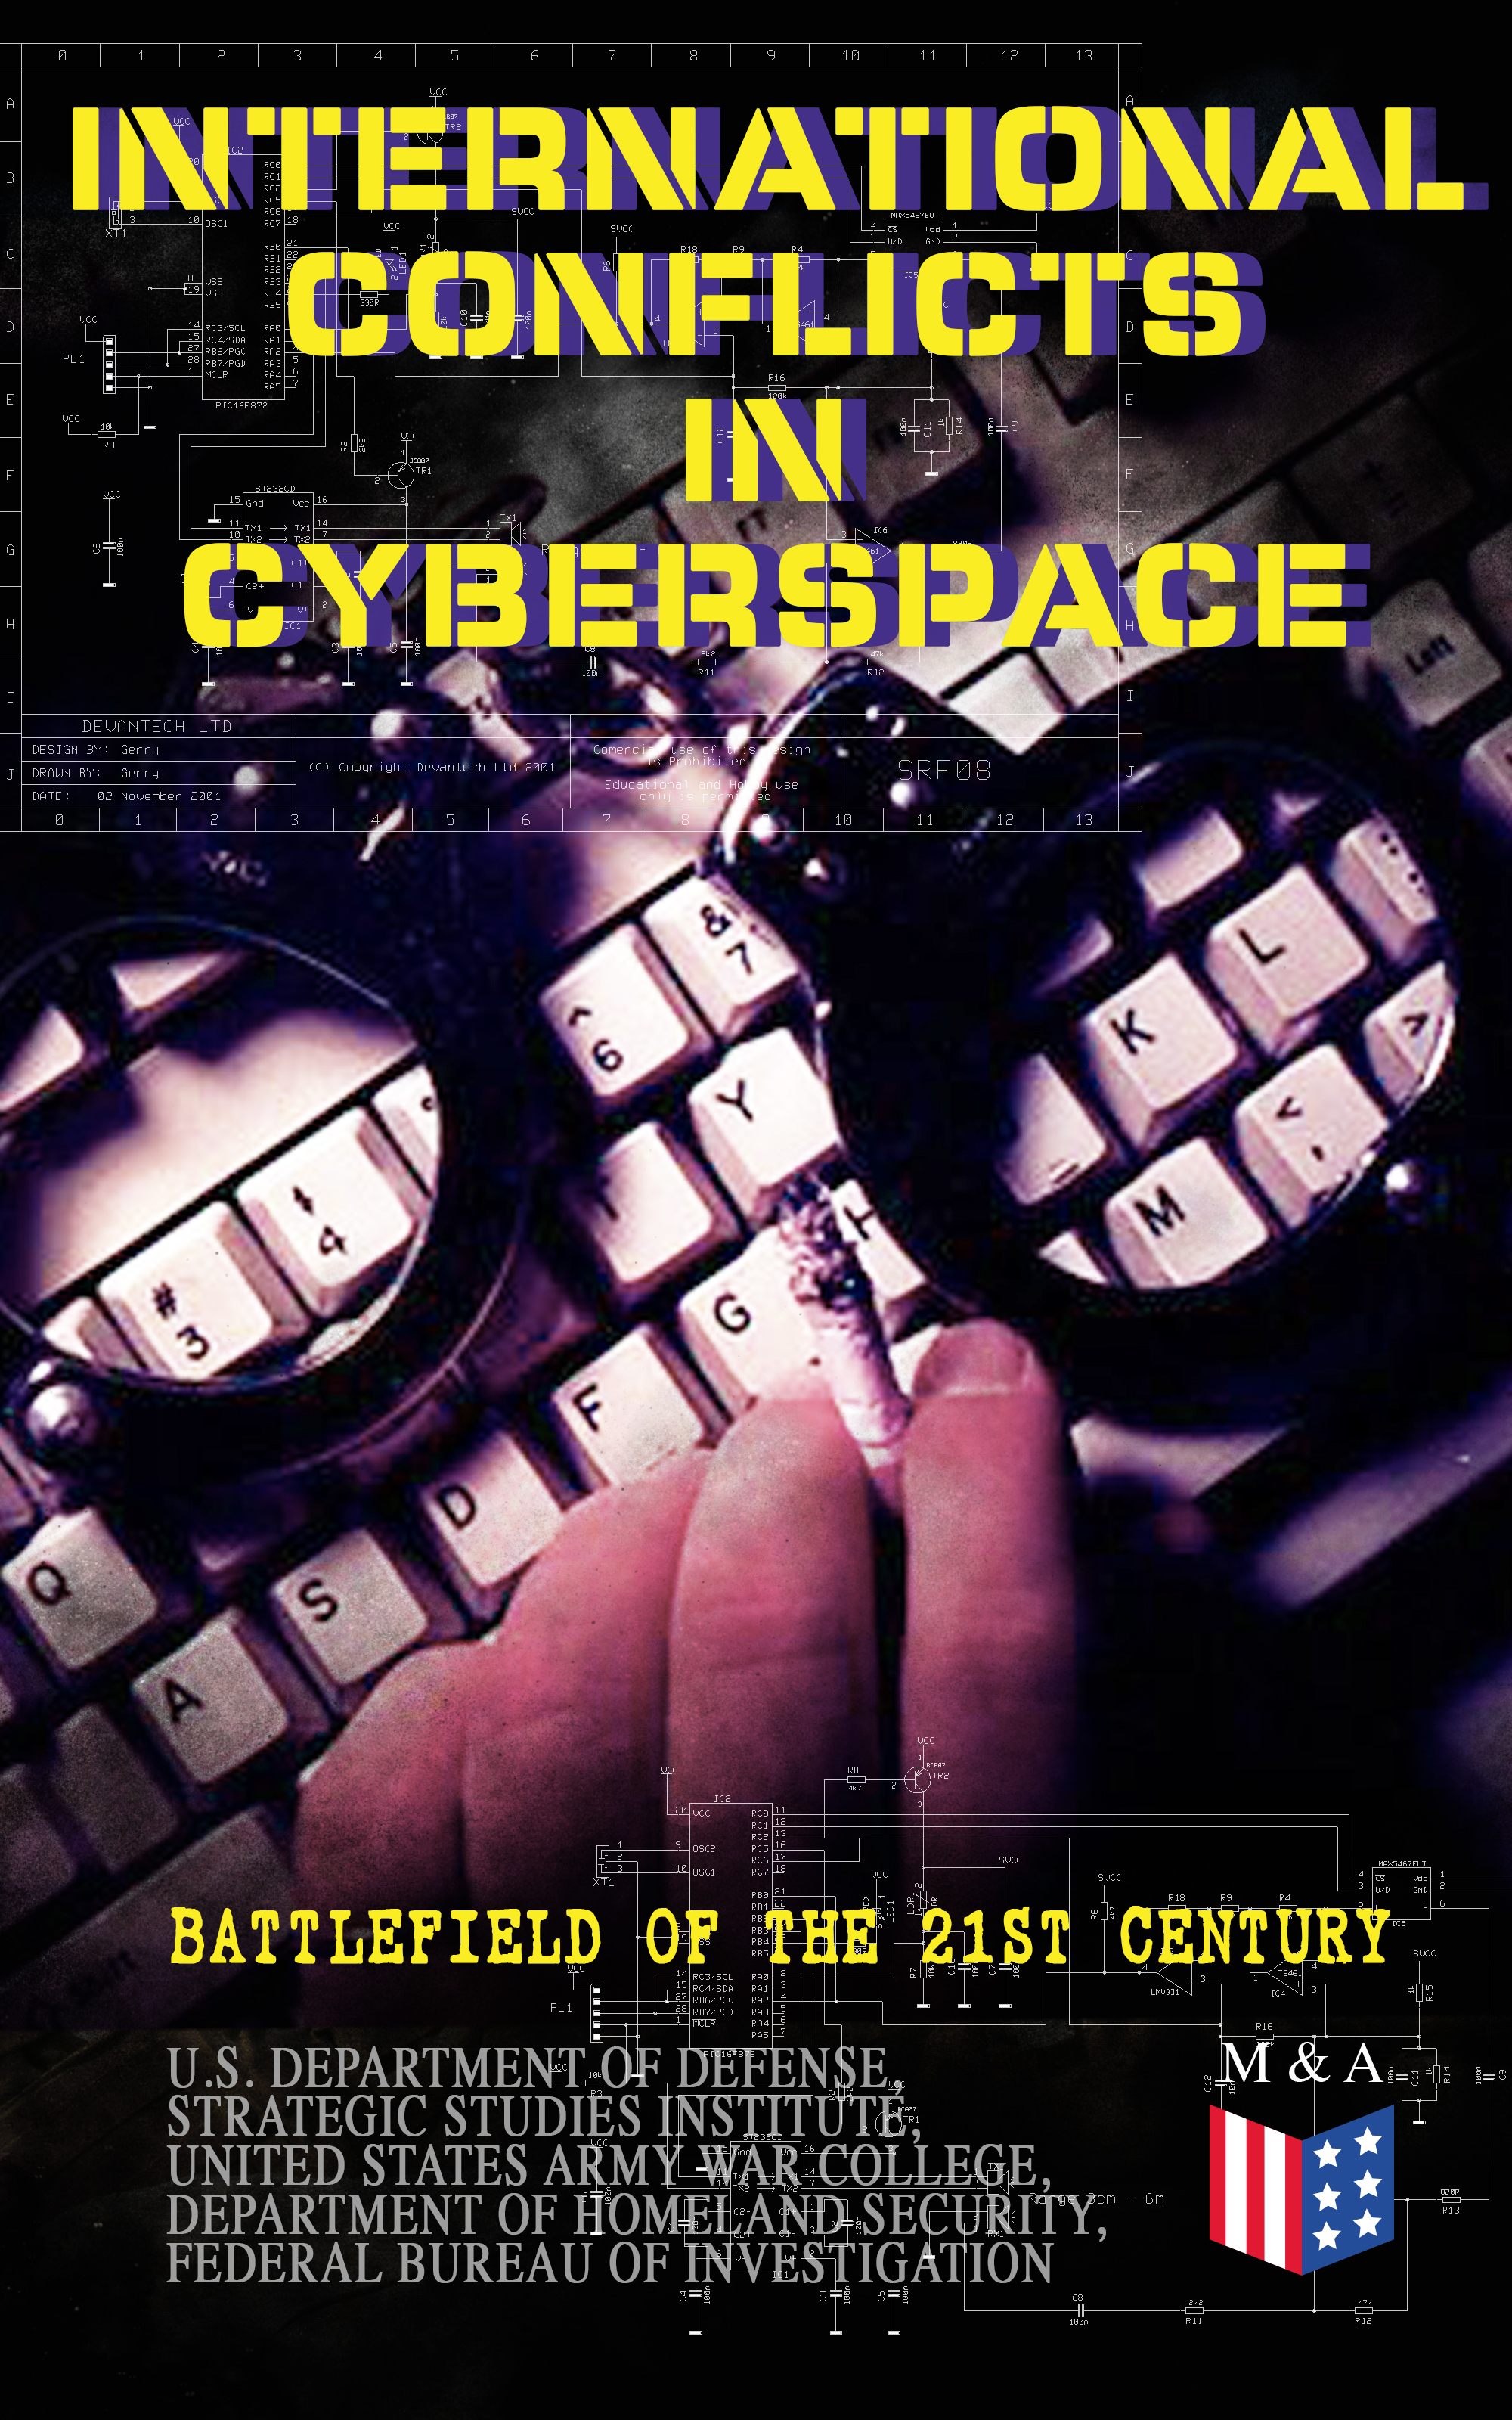 цена на Federal Bureau of Investigation International Conflicts in Cyberspace - Battlefield of the 21st Century